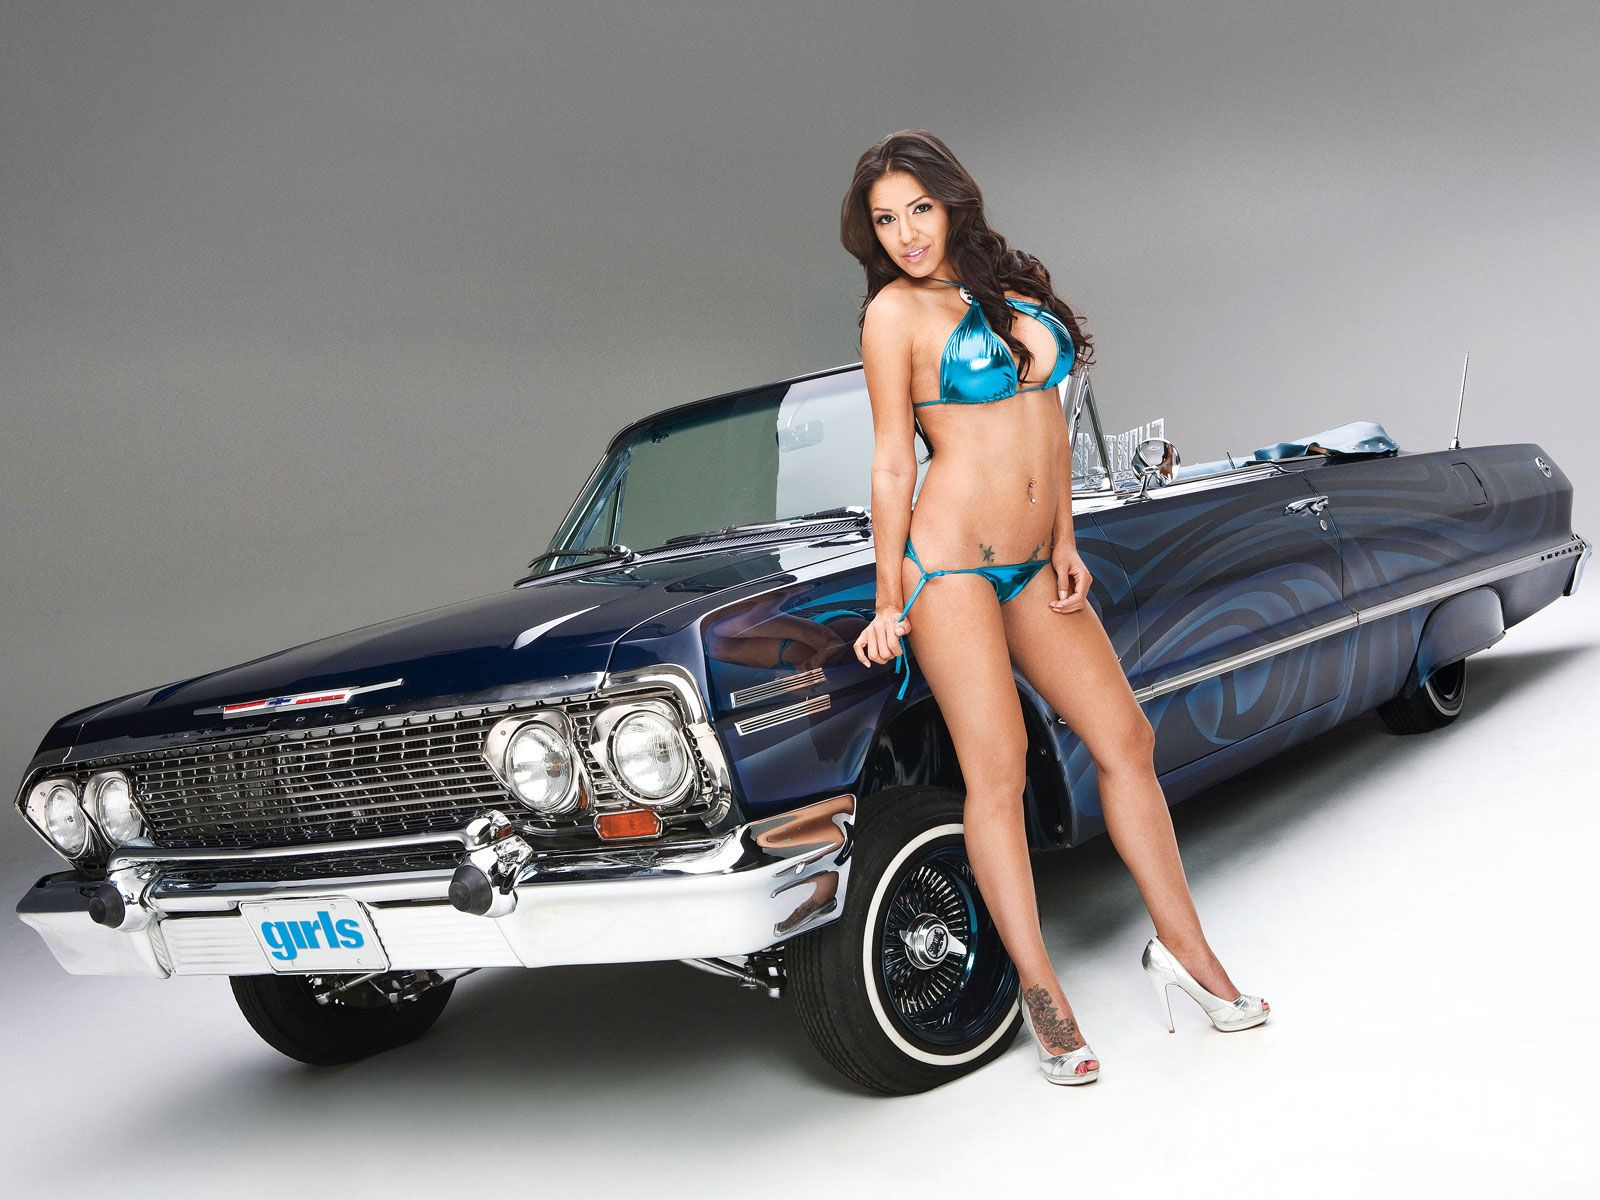 lowriders-and-sexy-girls-milf-with-big-breasts